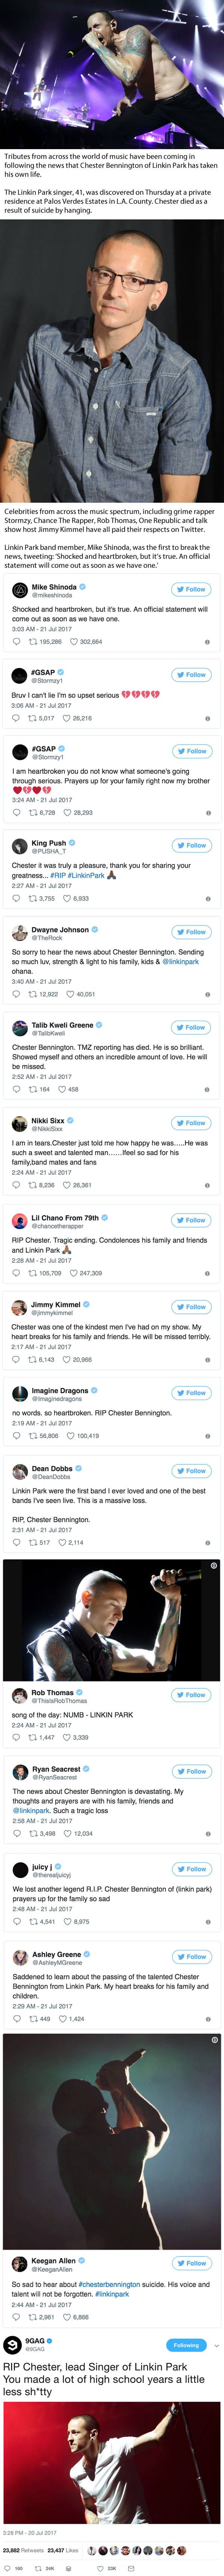 Celebrities pay tribute to Linkin Park's Chester Bennington as a legend dies aged 41